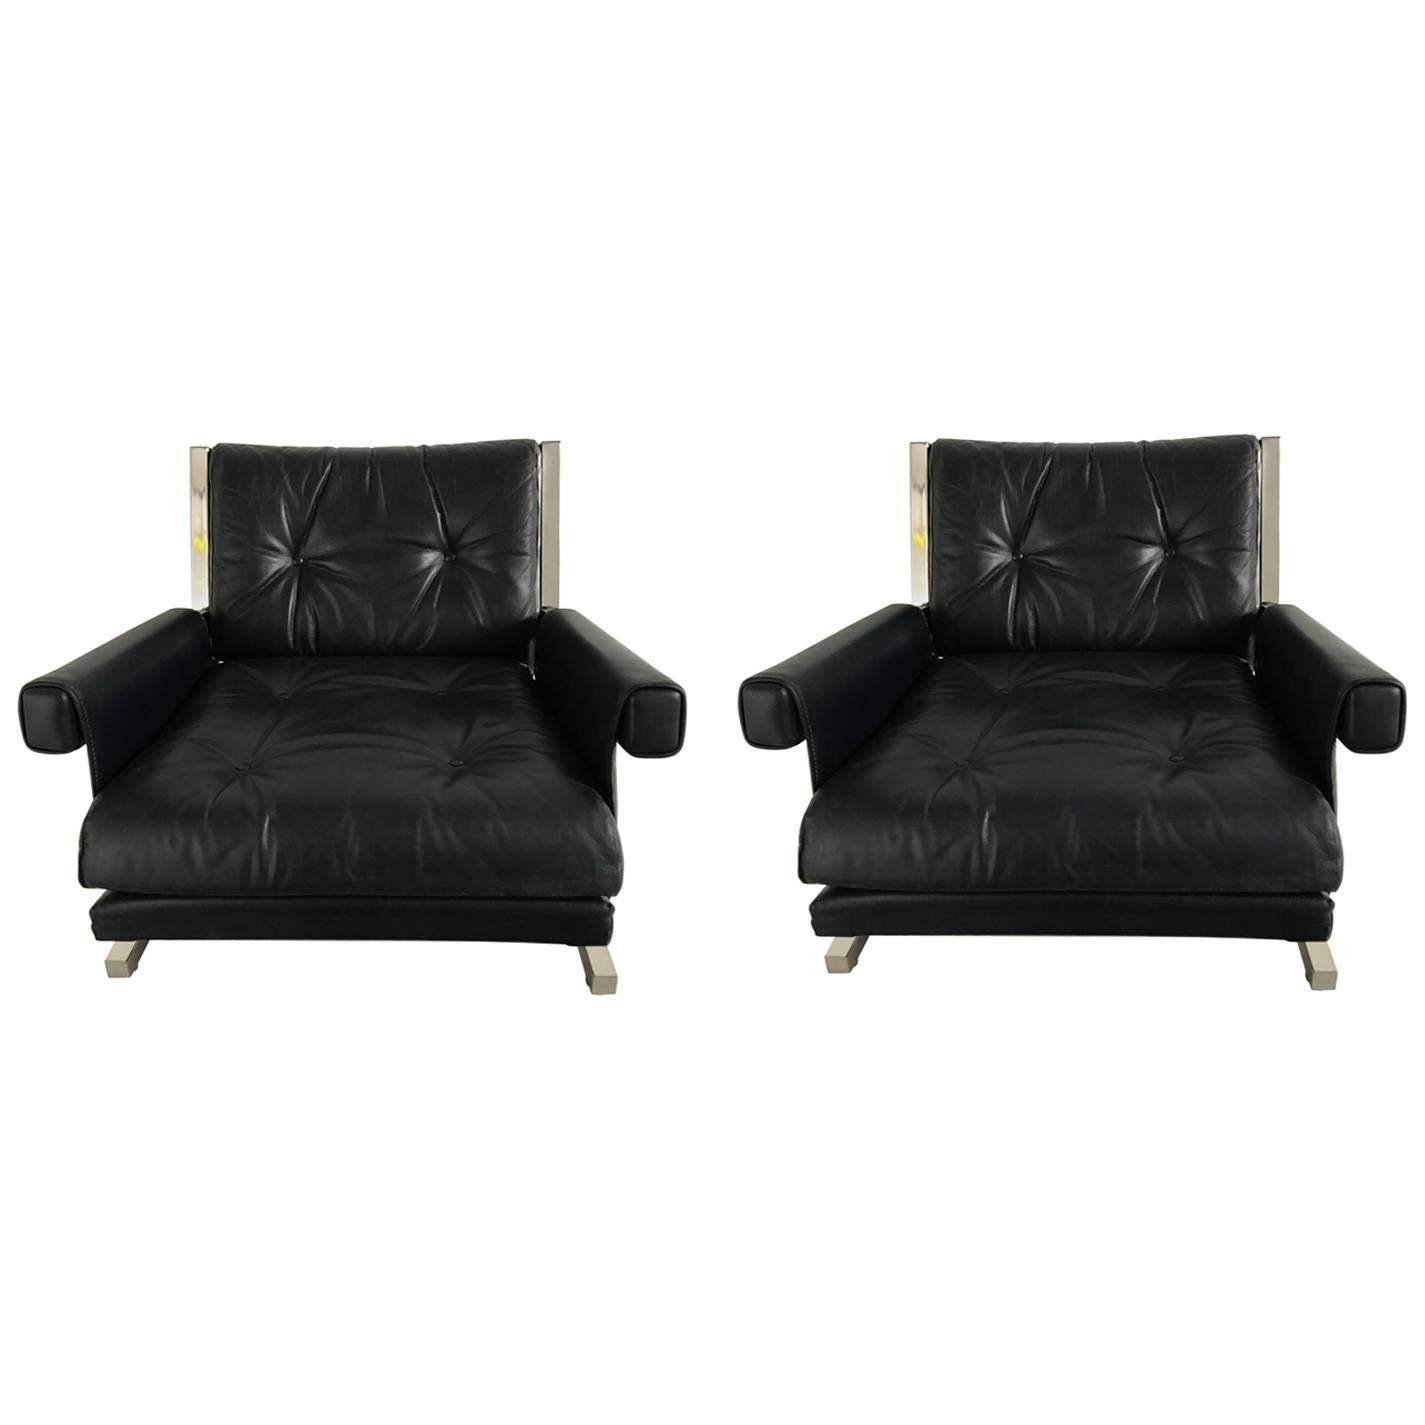 Pair of Leather Armchairs by Jacques Quinet